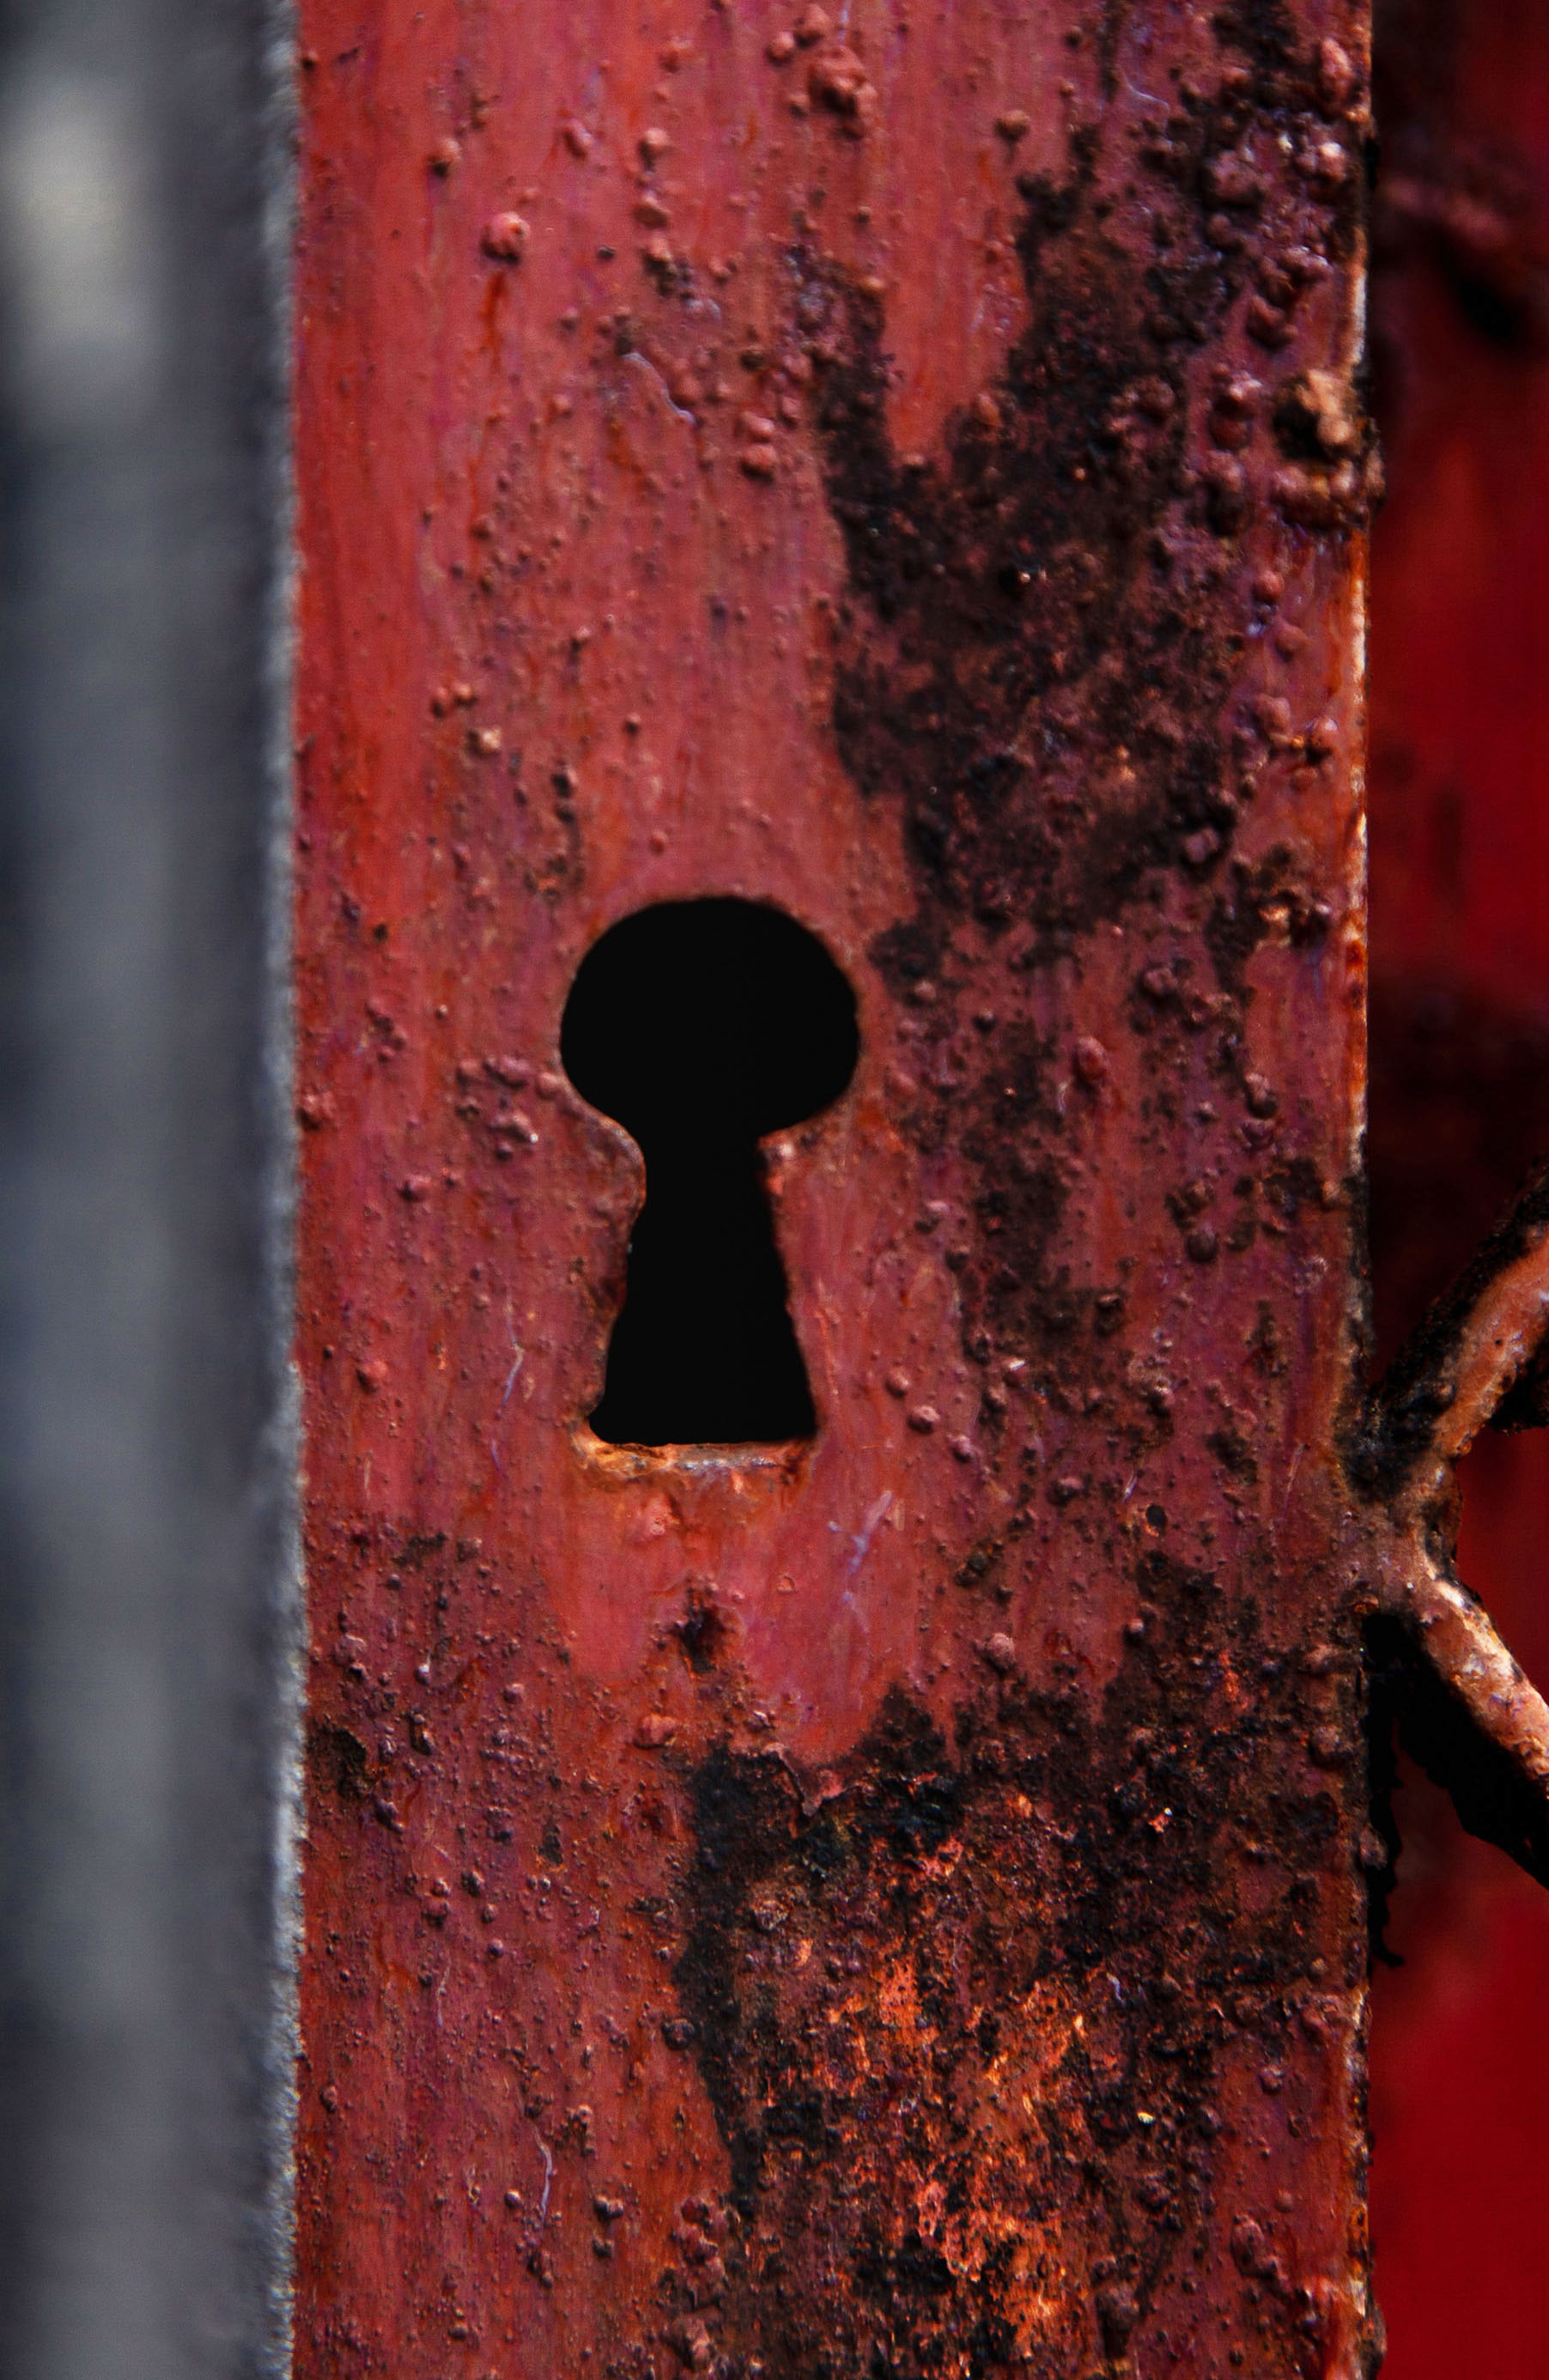 Red Rusty metal door keyhole